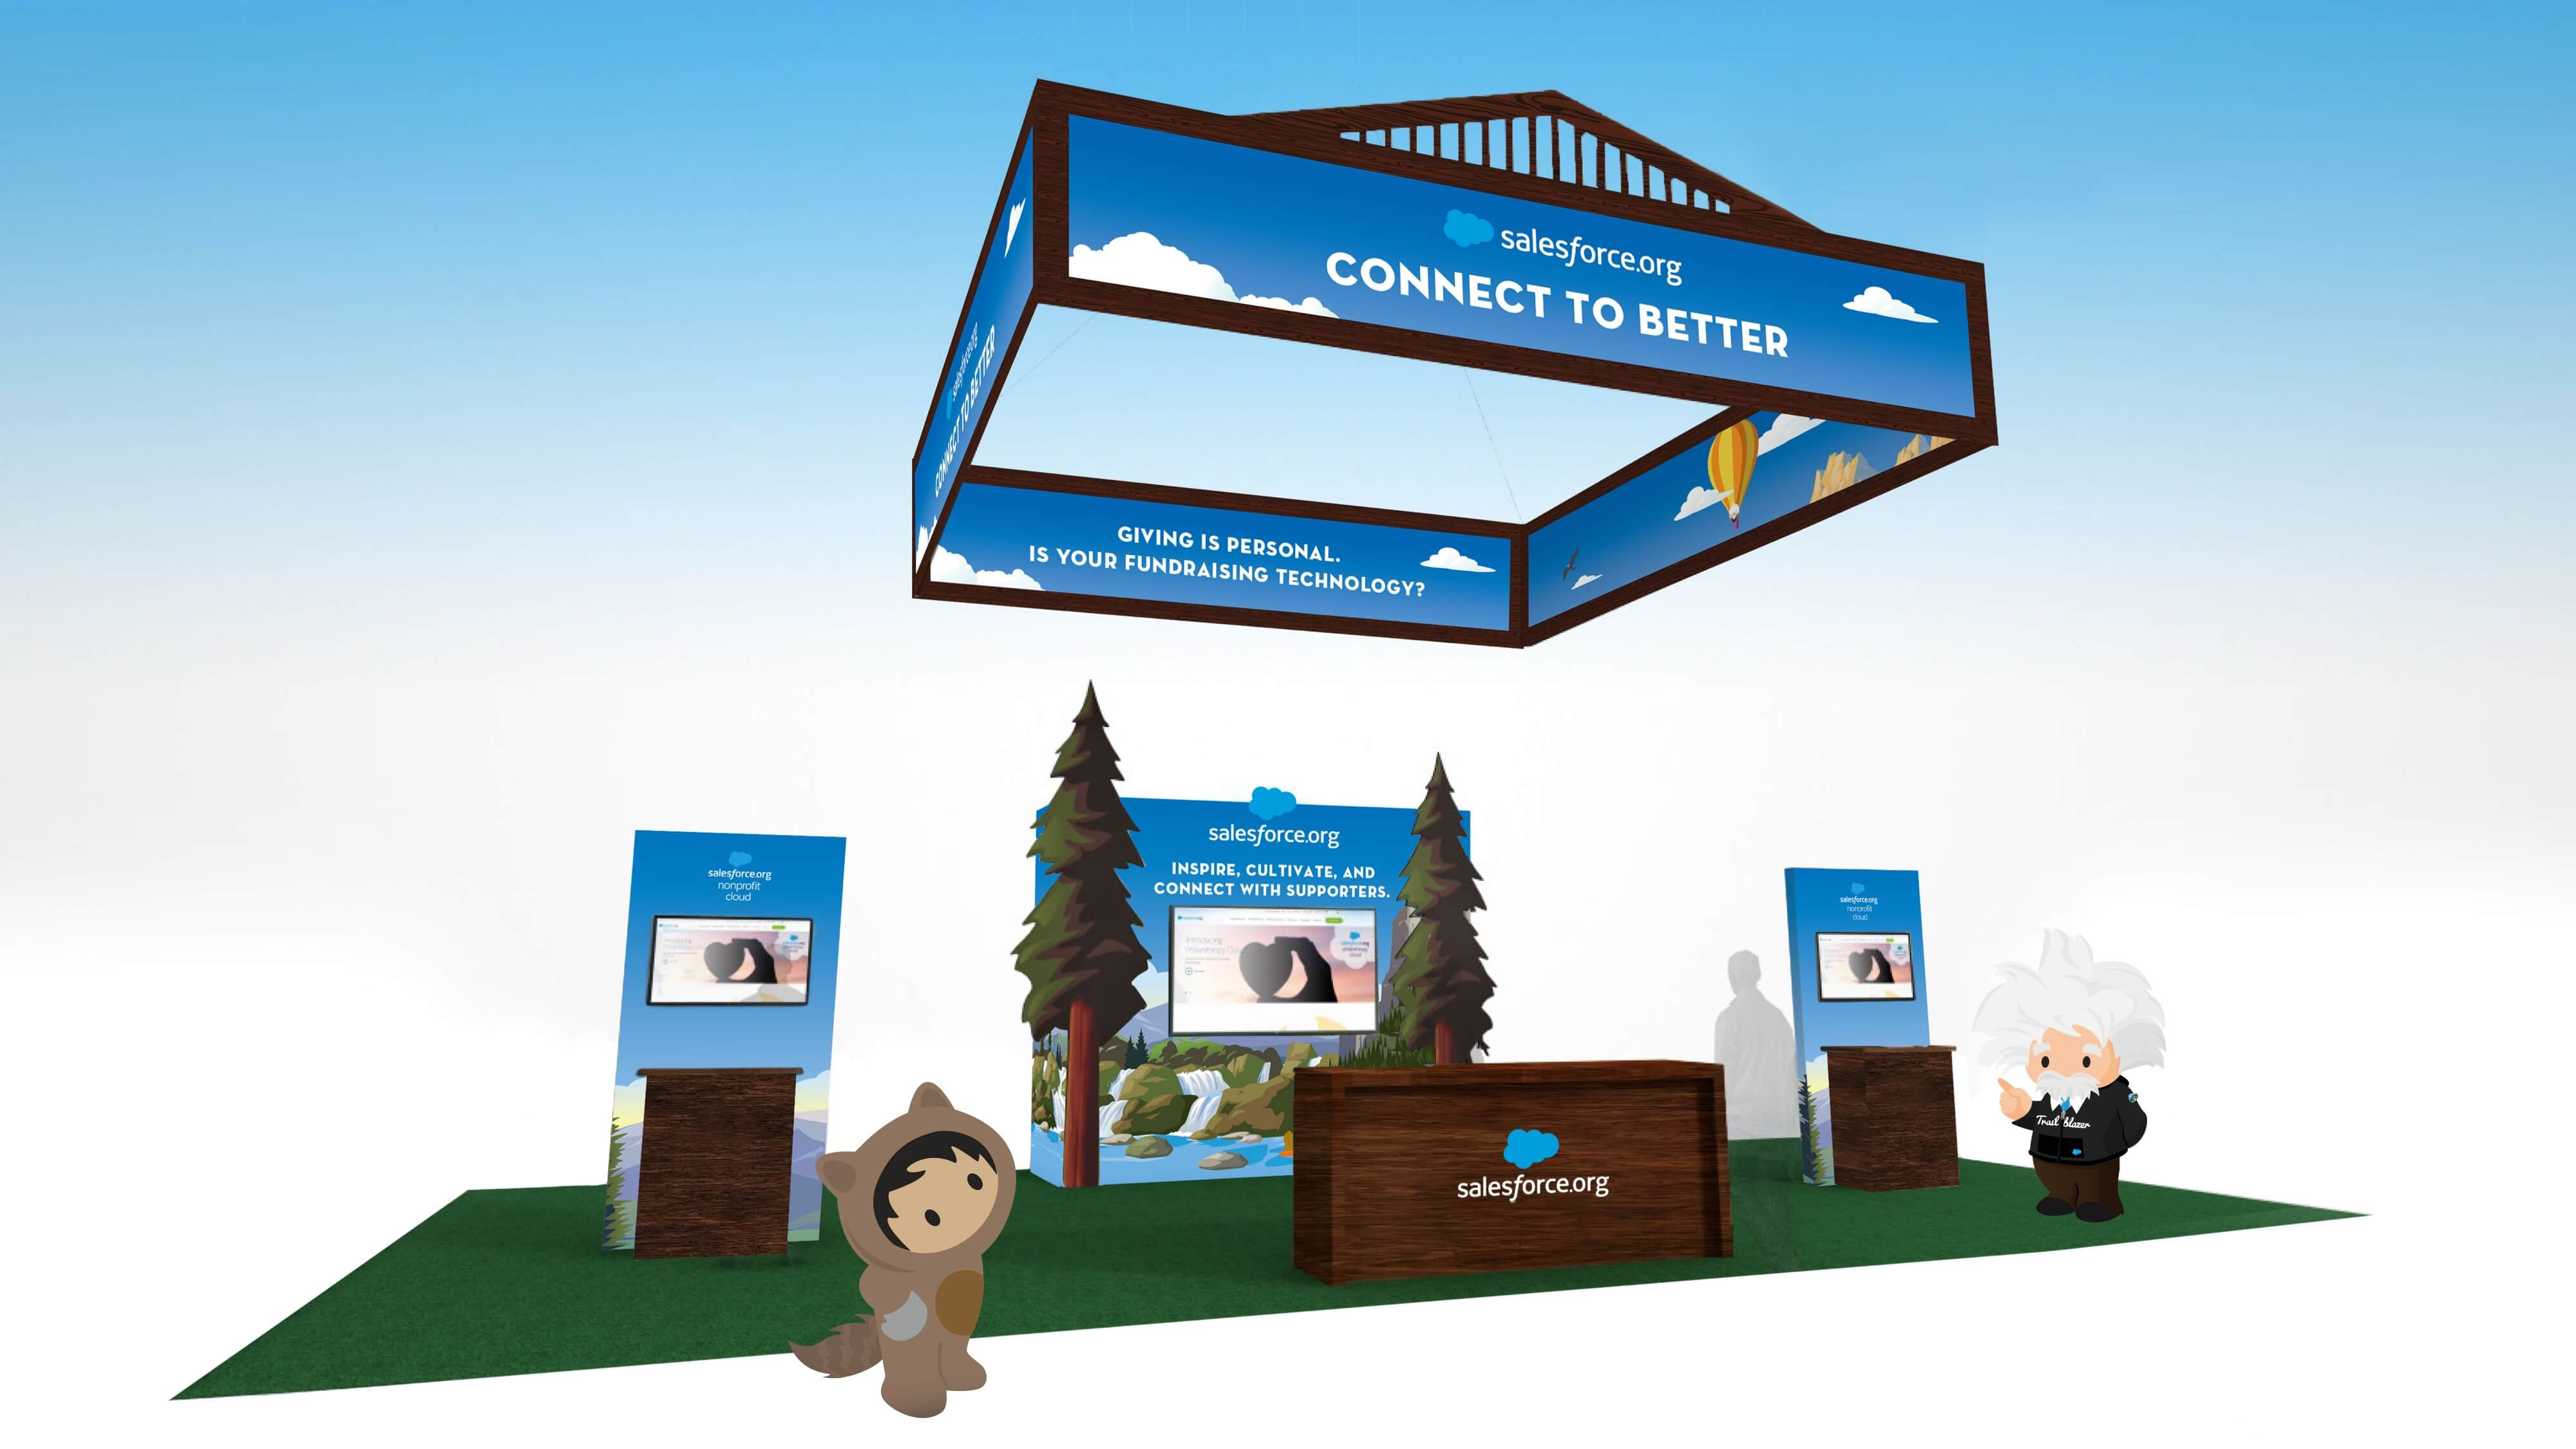 a mock up of an experiential marketing campaign booth